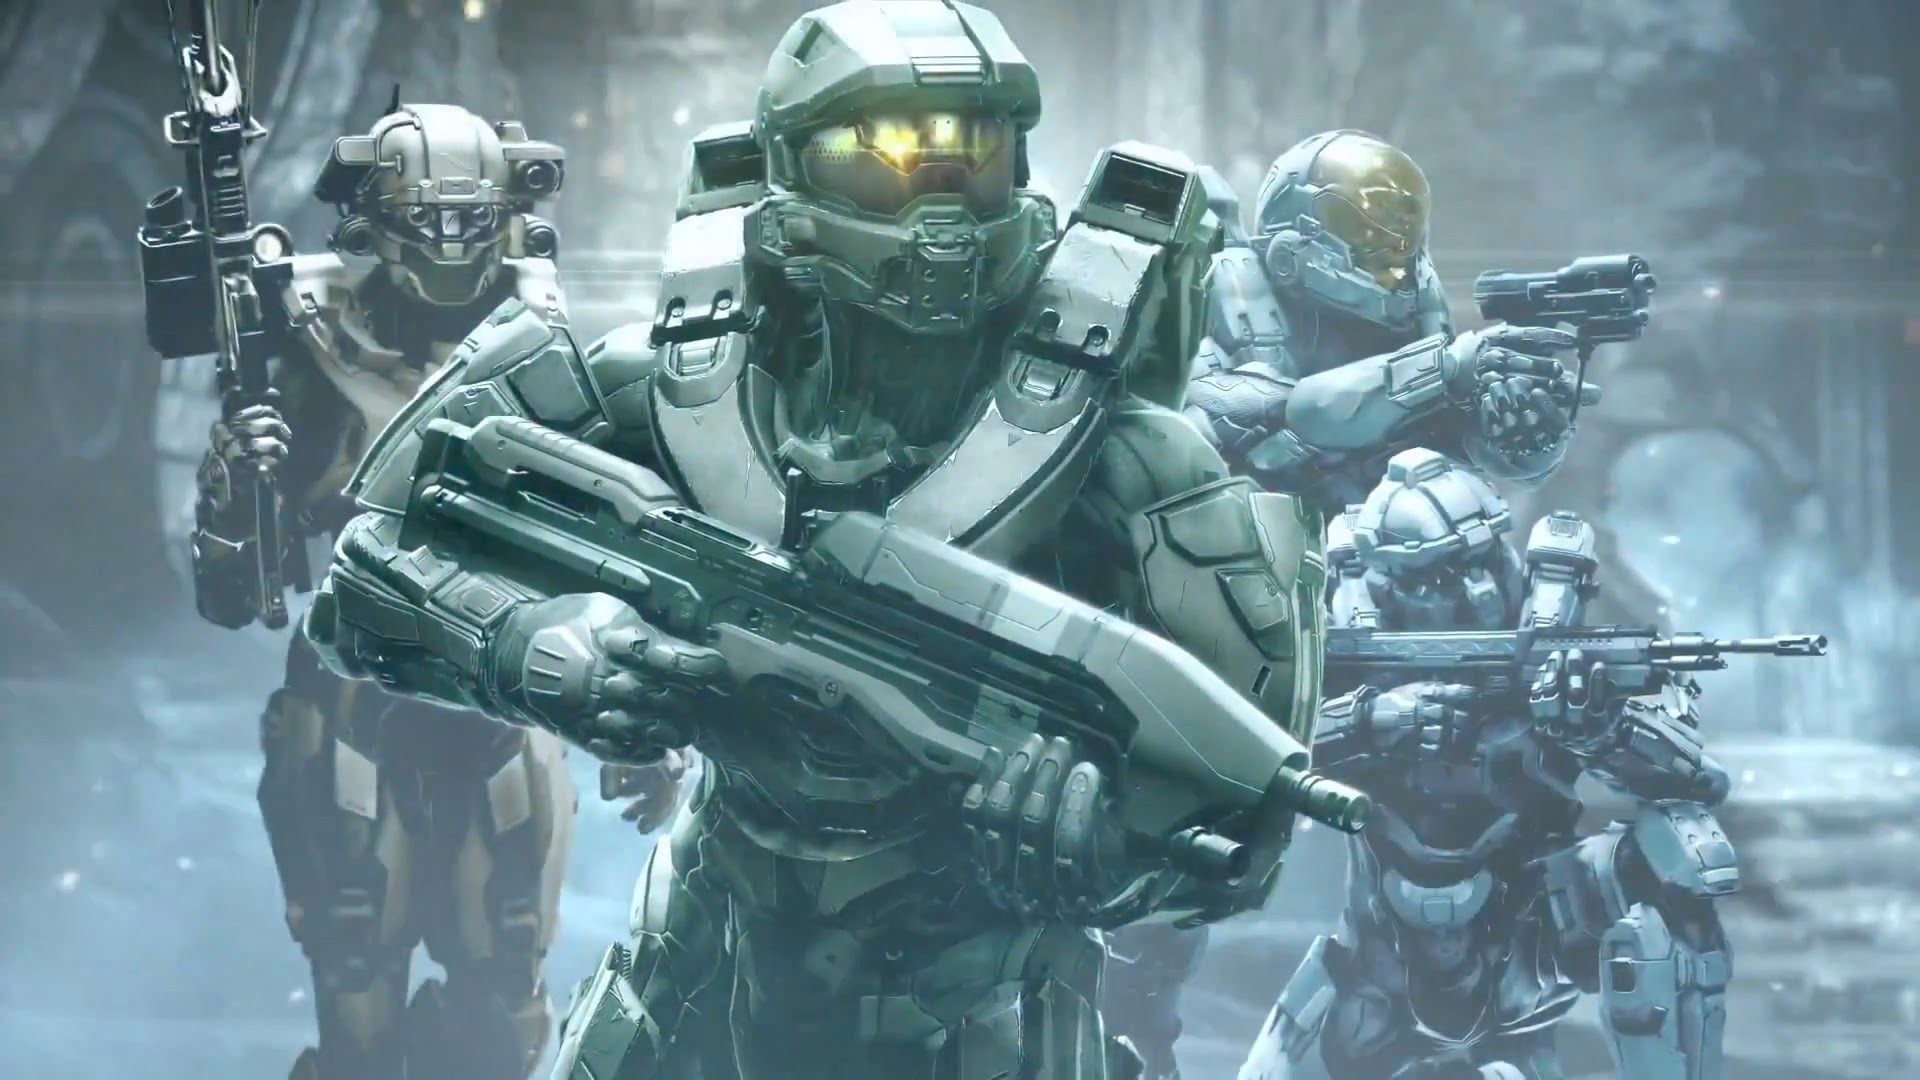 Halo 5 Guardians – Master Chief vs Spartan Locke Teaser Trailer (Xbox One  Exclusive) – YouTube